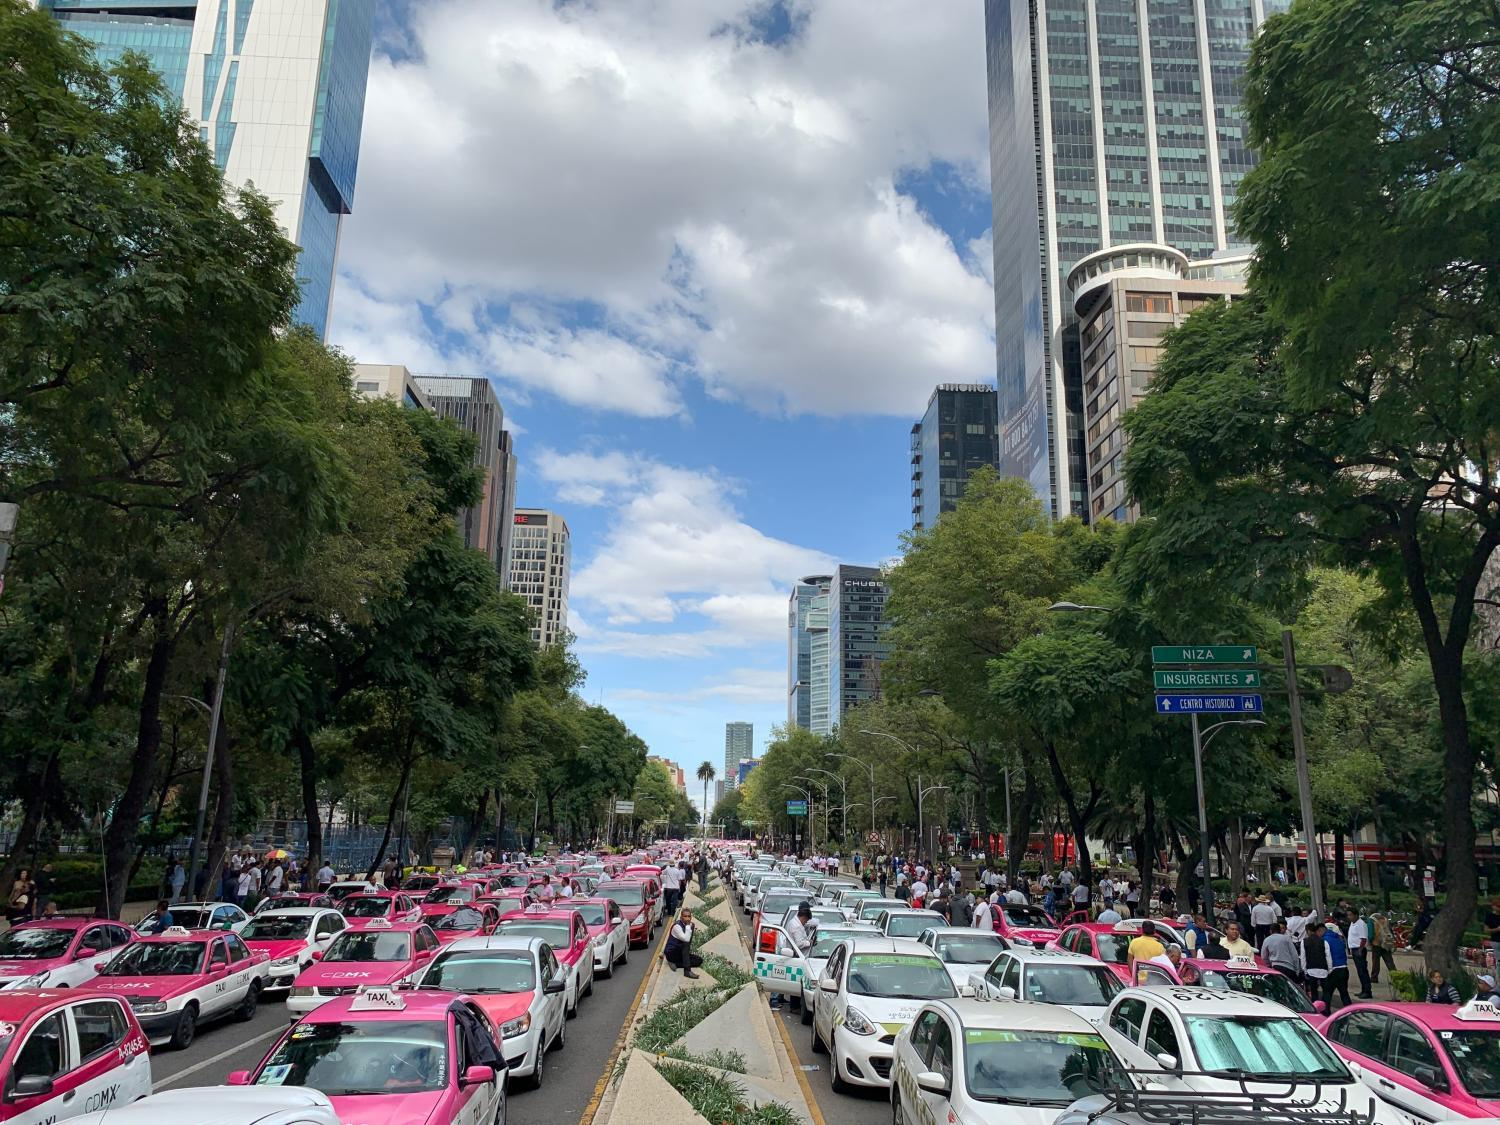 Mexico City taxi drivers blocked major streets to protest Uber.